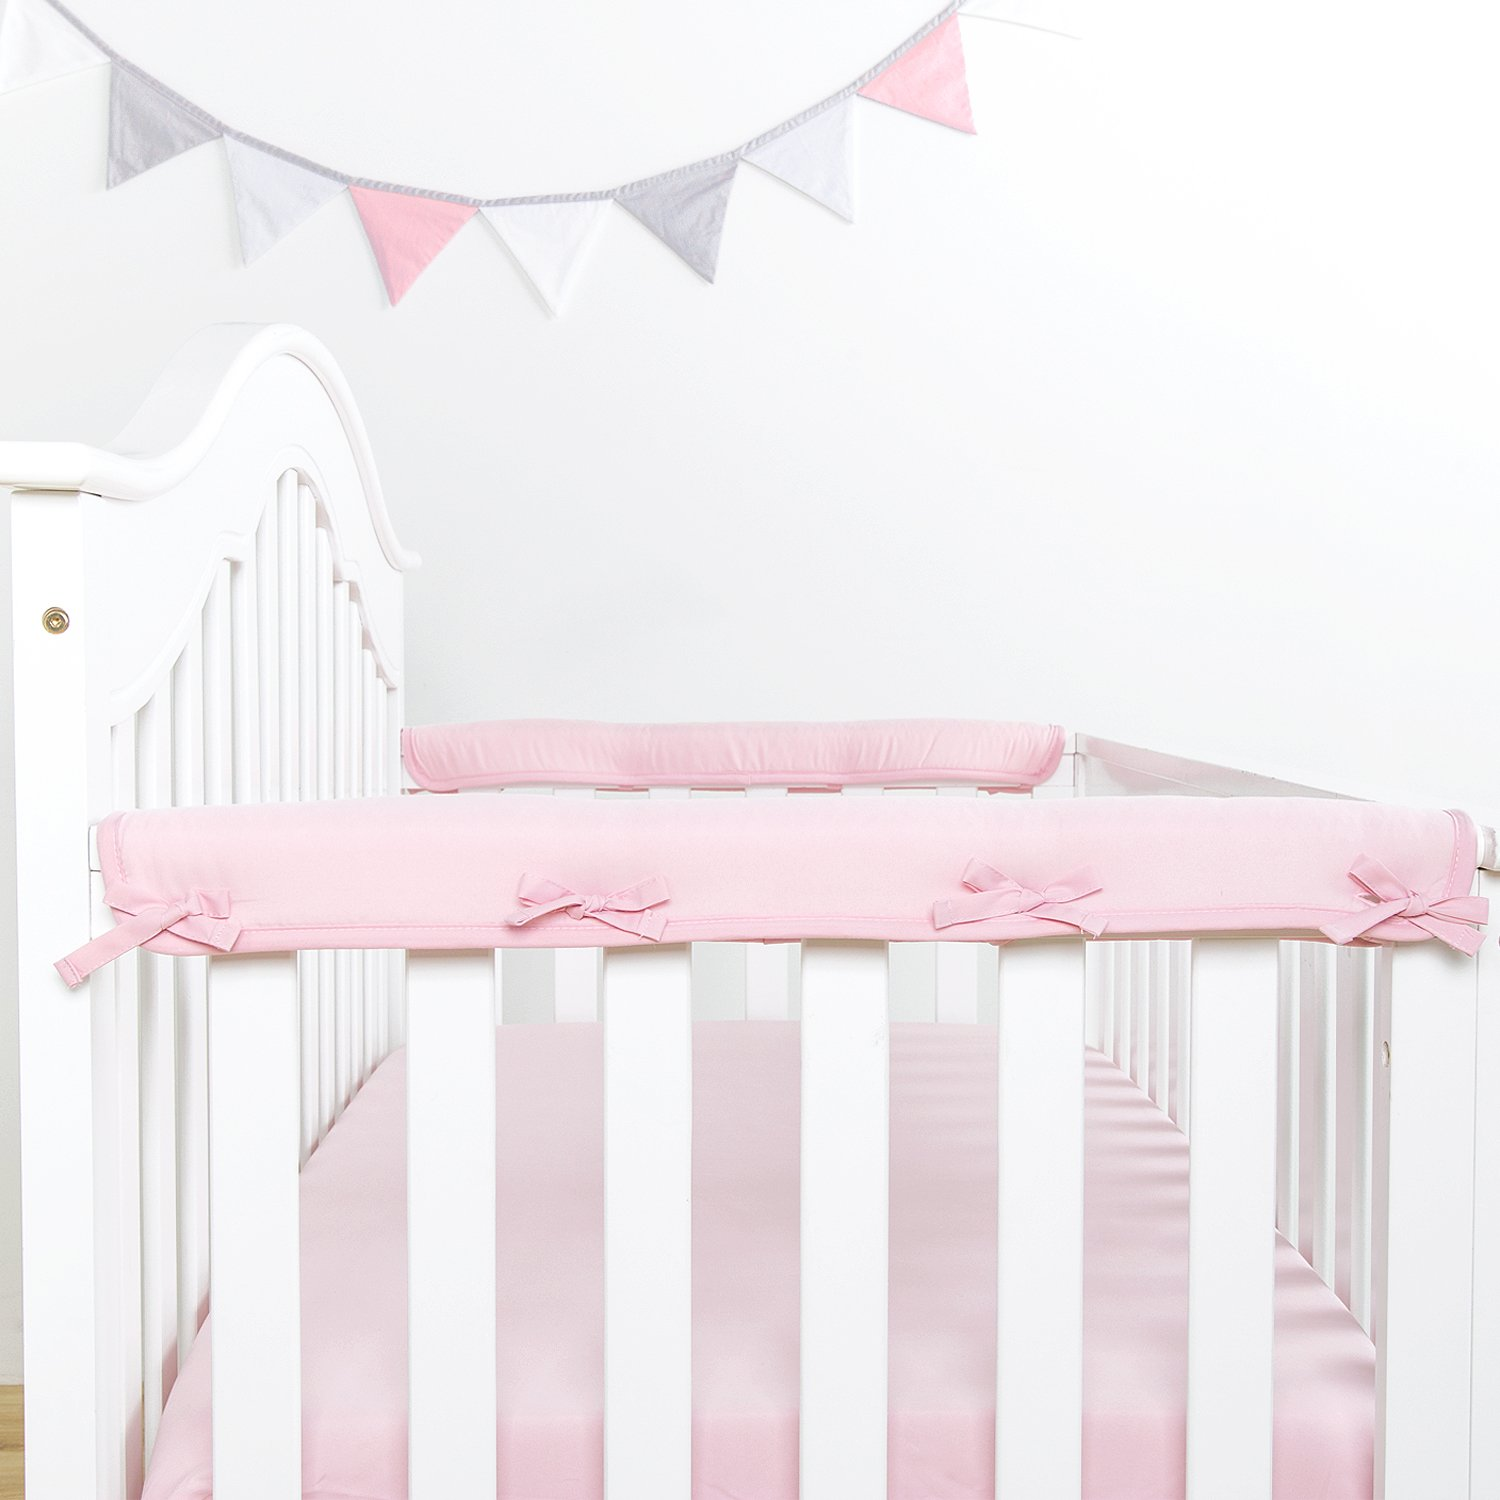 TILLYOU 2-Pack Padded Baby Crib Rail Cover Protector Safe Teething Guard Wrap for Narrow Side Crib Rails(Measuring Up to 8'' Around), 100% Silky Soft Microfiber Polyester, Reversible, Lt Pink/White